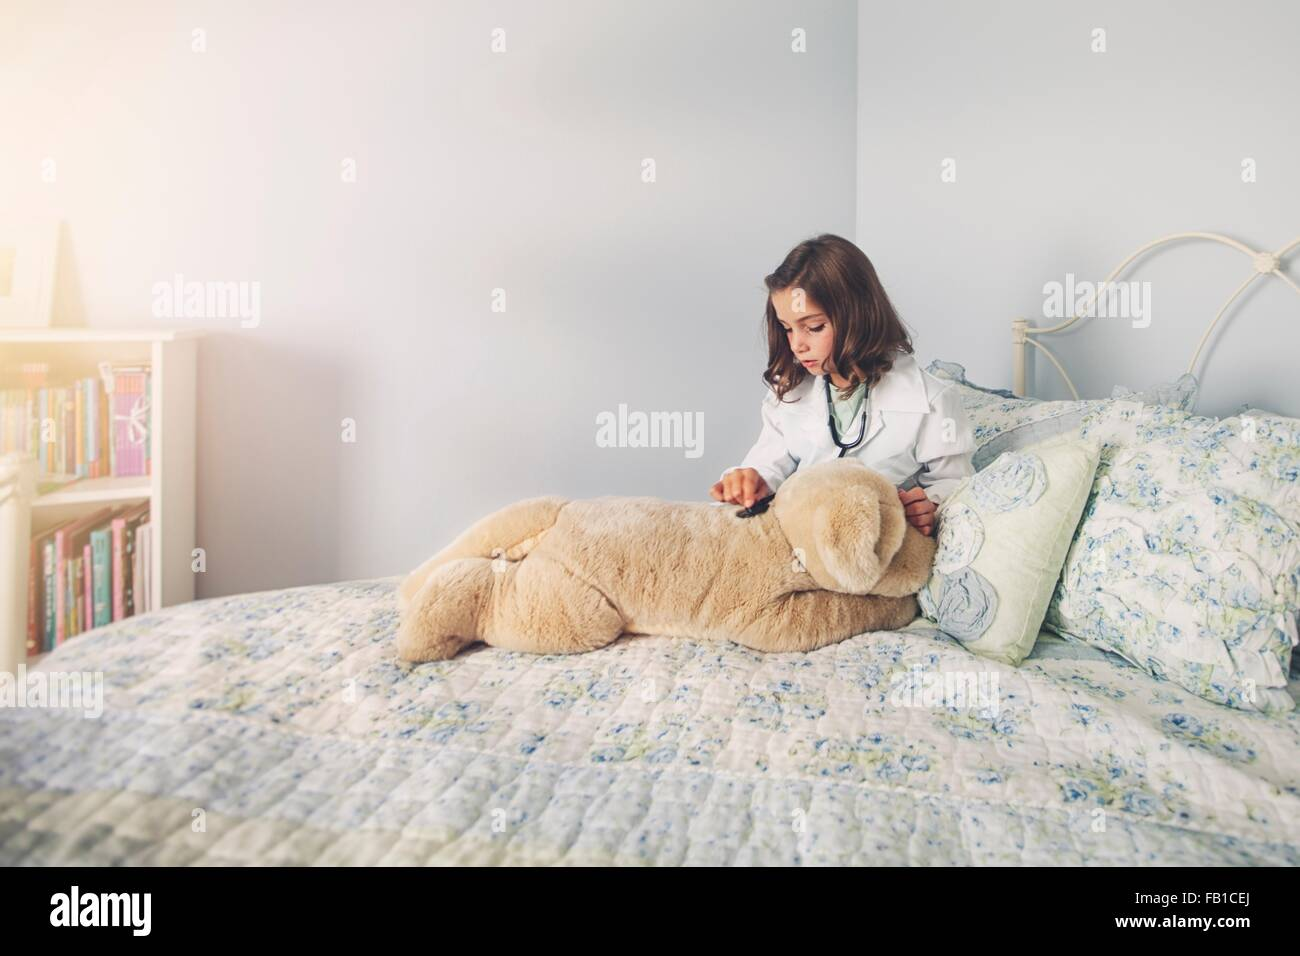 Girl dressed up in lab coat sitting in bed using stethoscope on soft toy - Stock Image